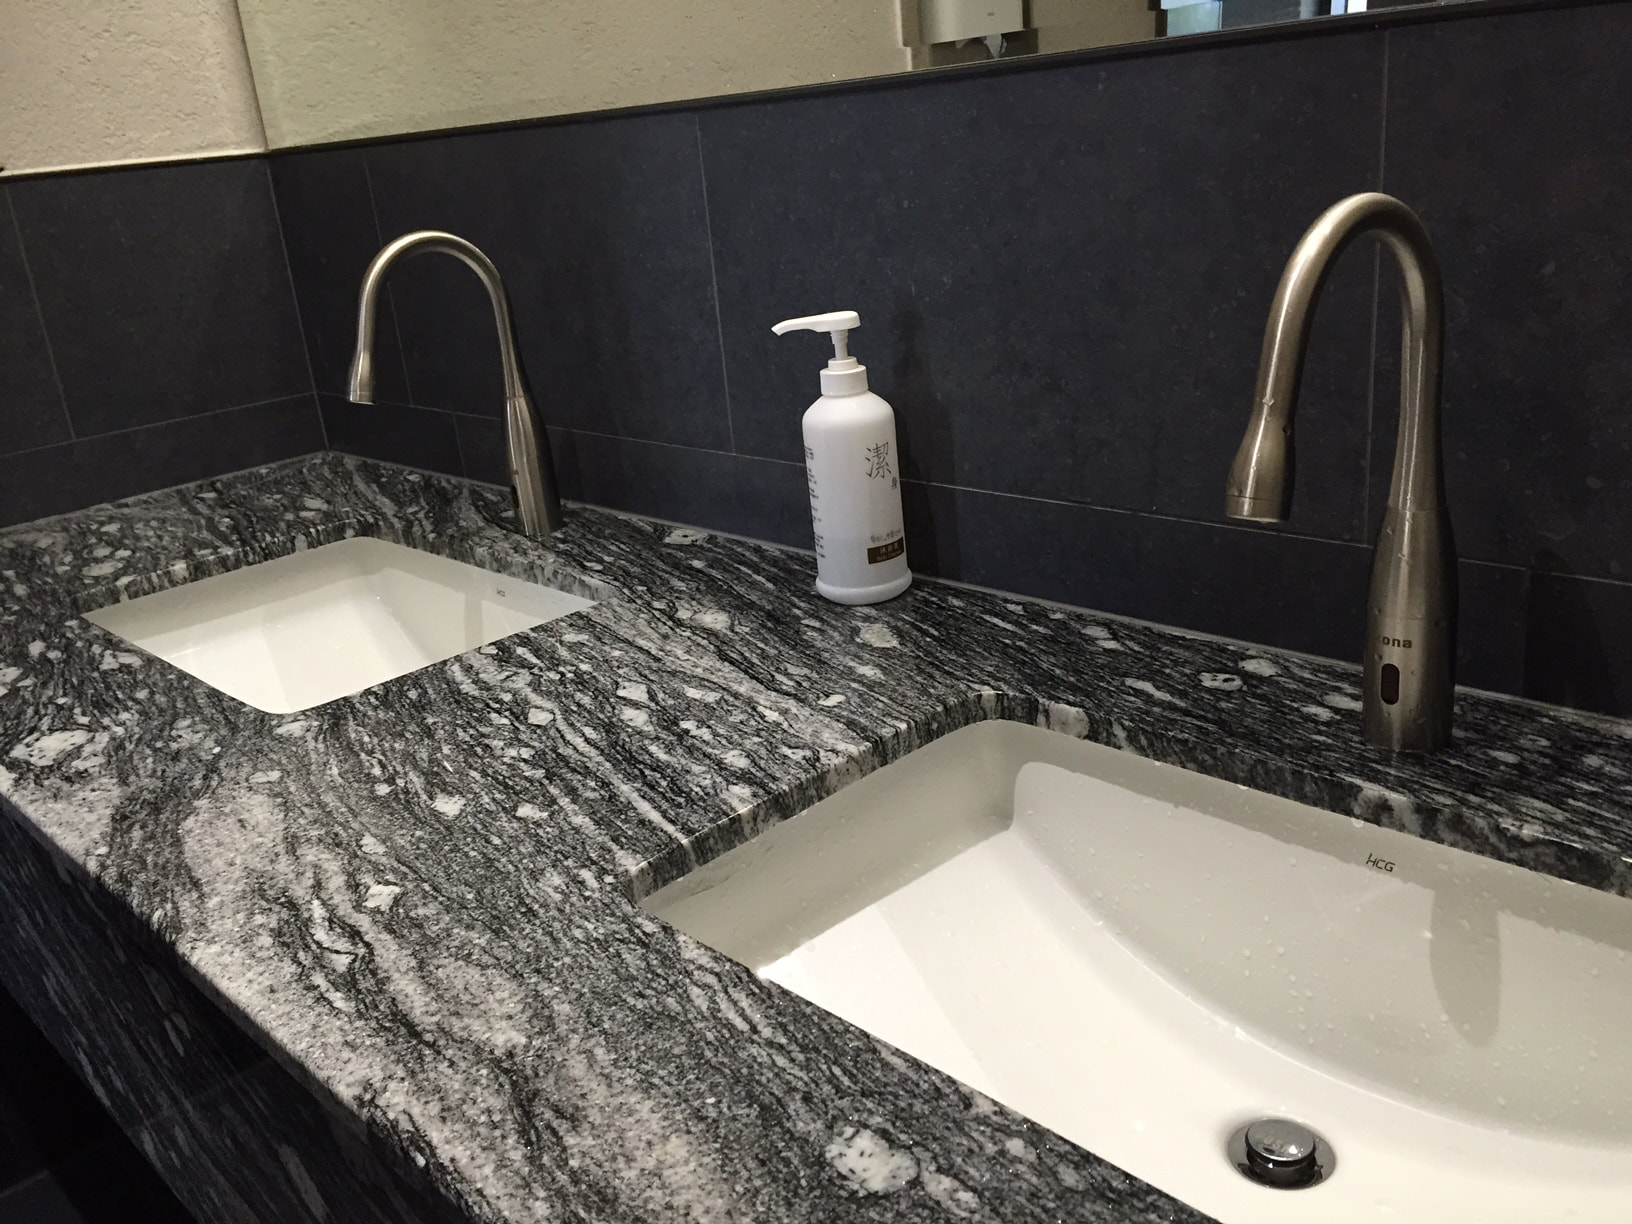 kona ozone disinfection faucet system